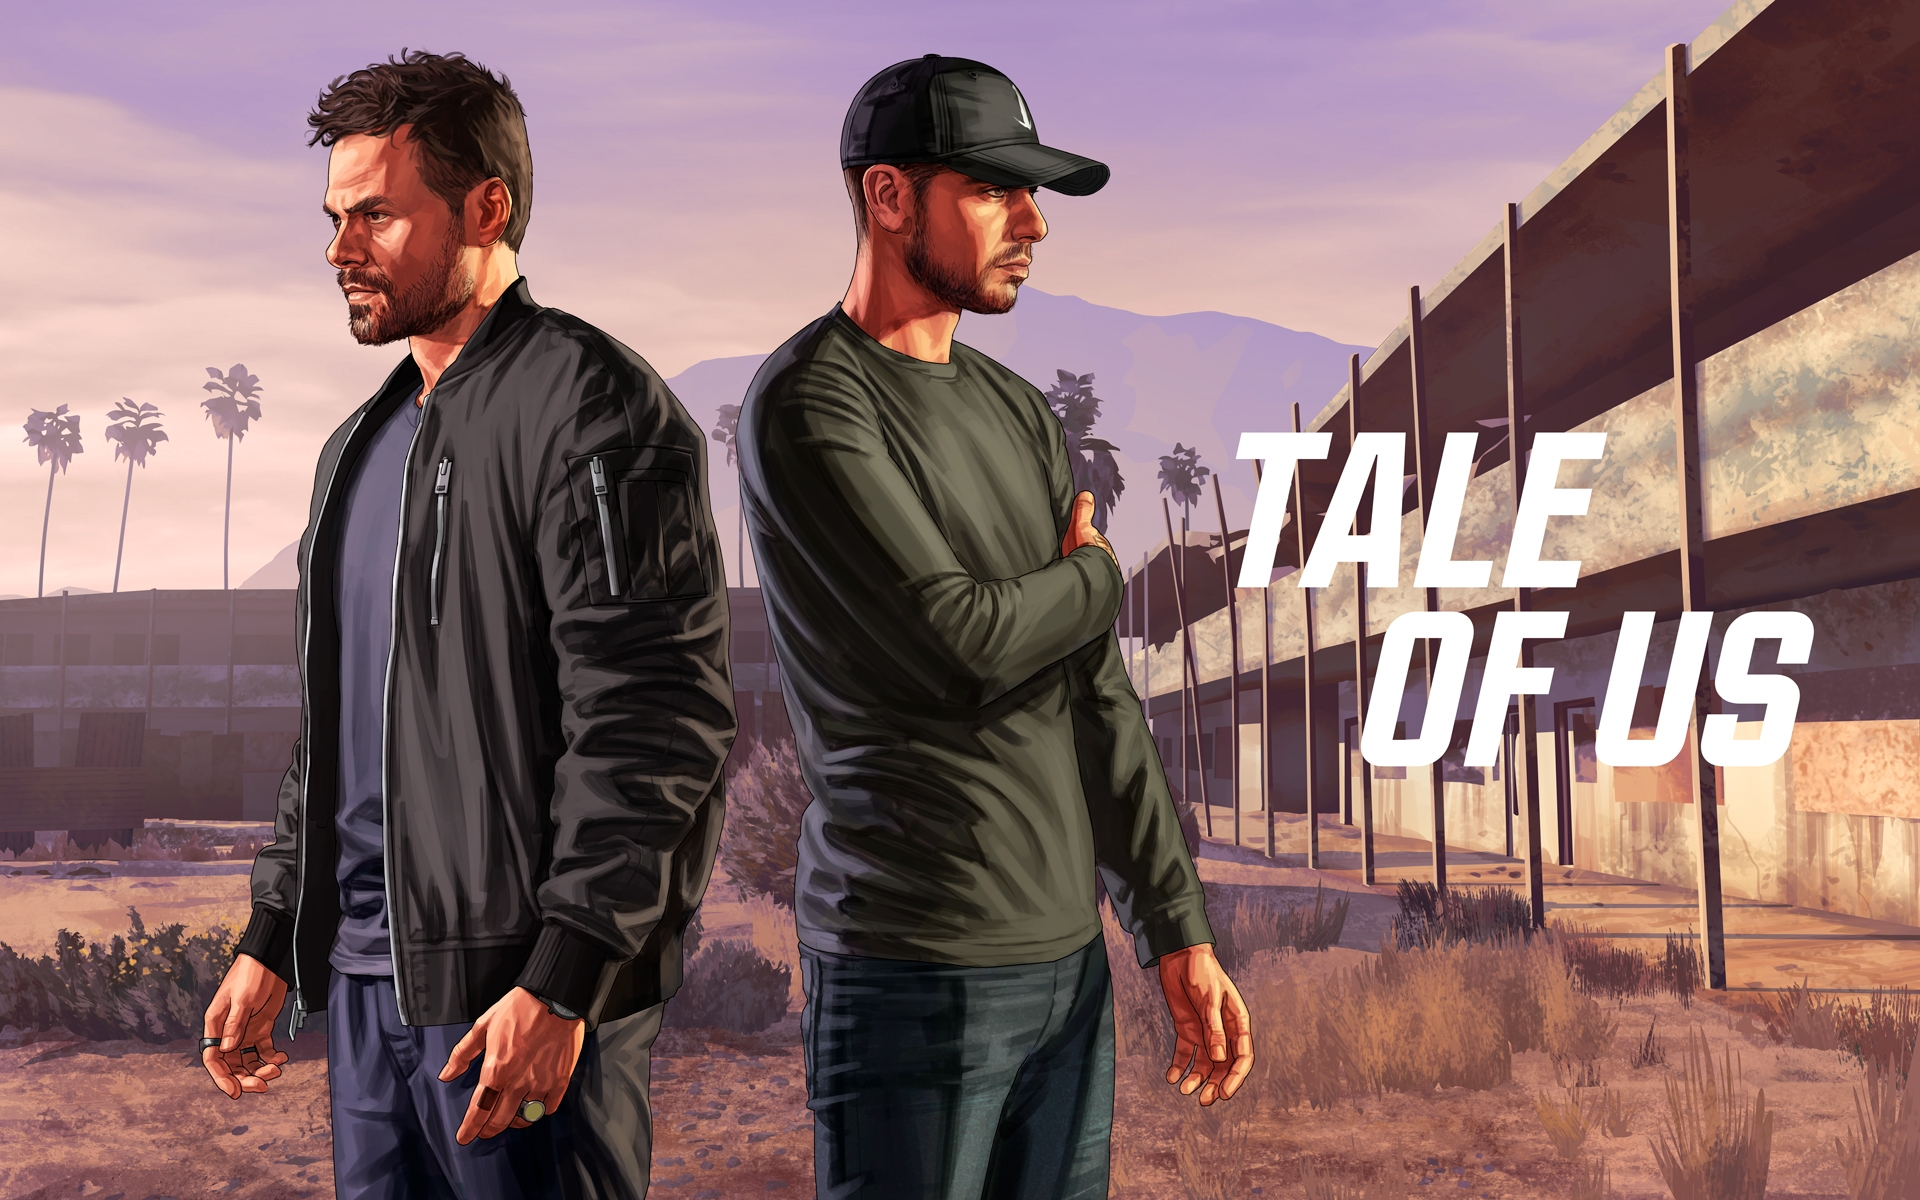 GTA Online: After Hours - Tale Of Us Residency and Los Santos Underground Radio Now Available Plus New Enus Stafford and Blimp, Guest List Rewards and More